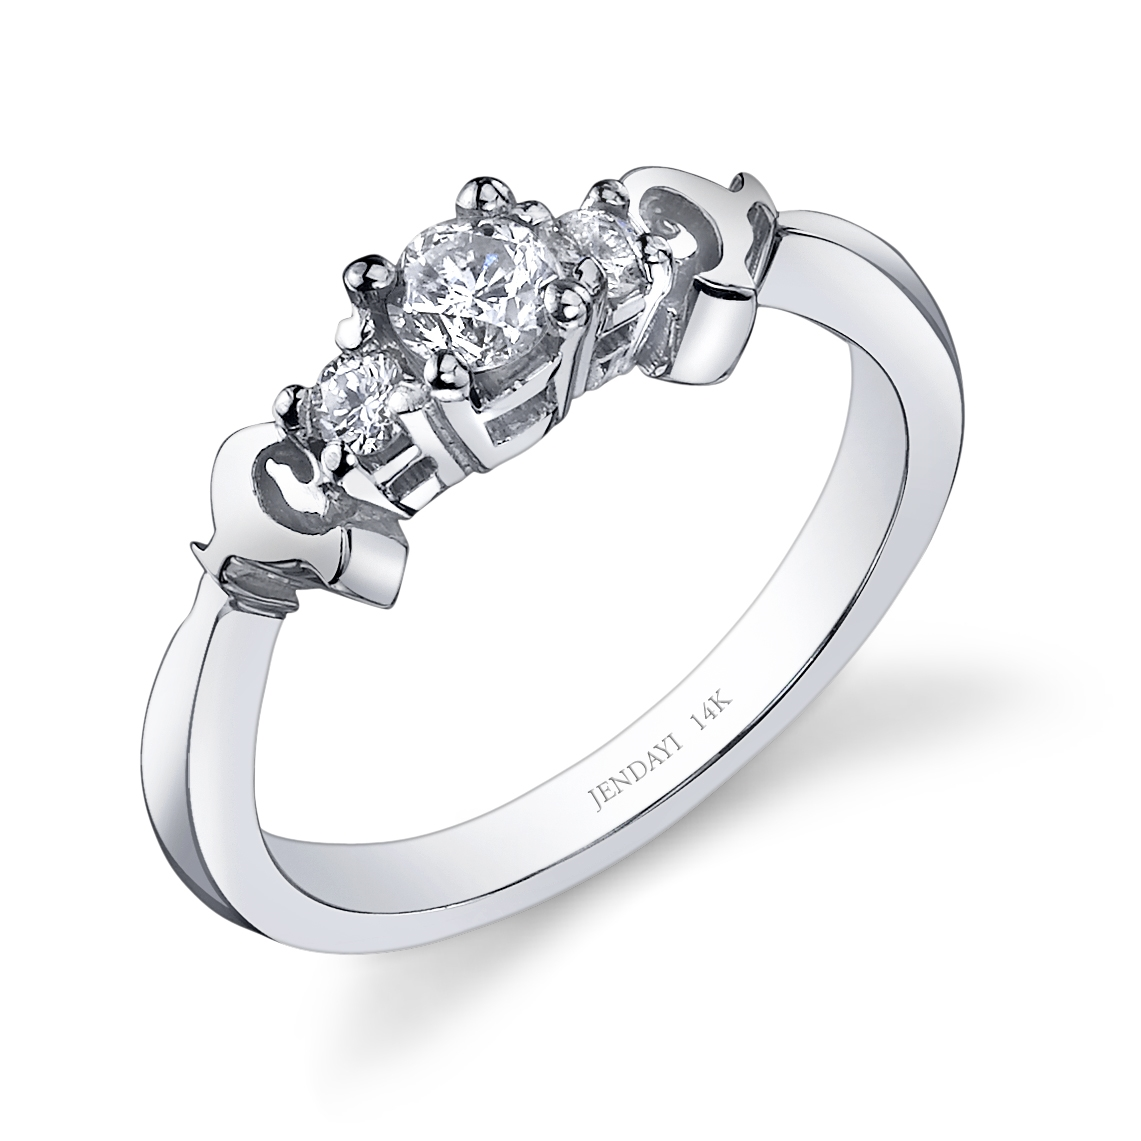 rings platinum wedding platinium halo band lilia jewellery product bands ring nash